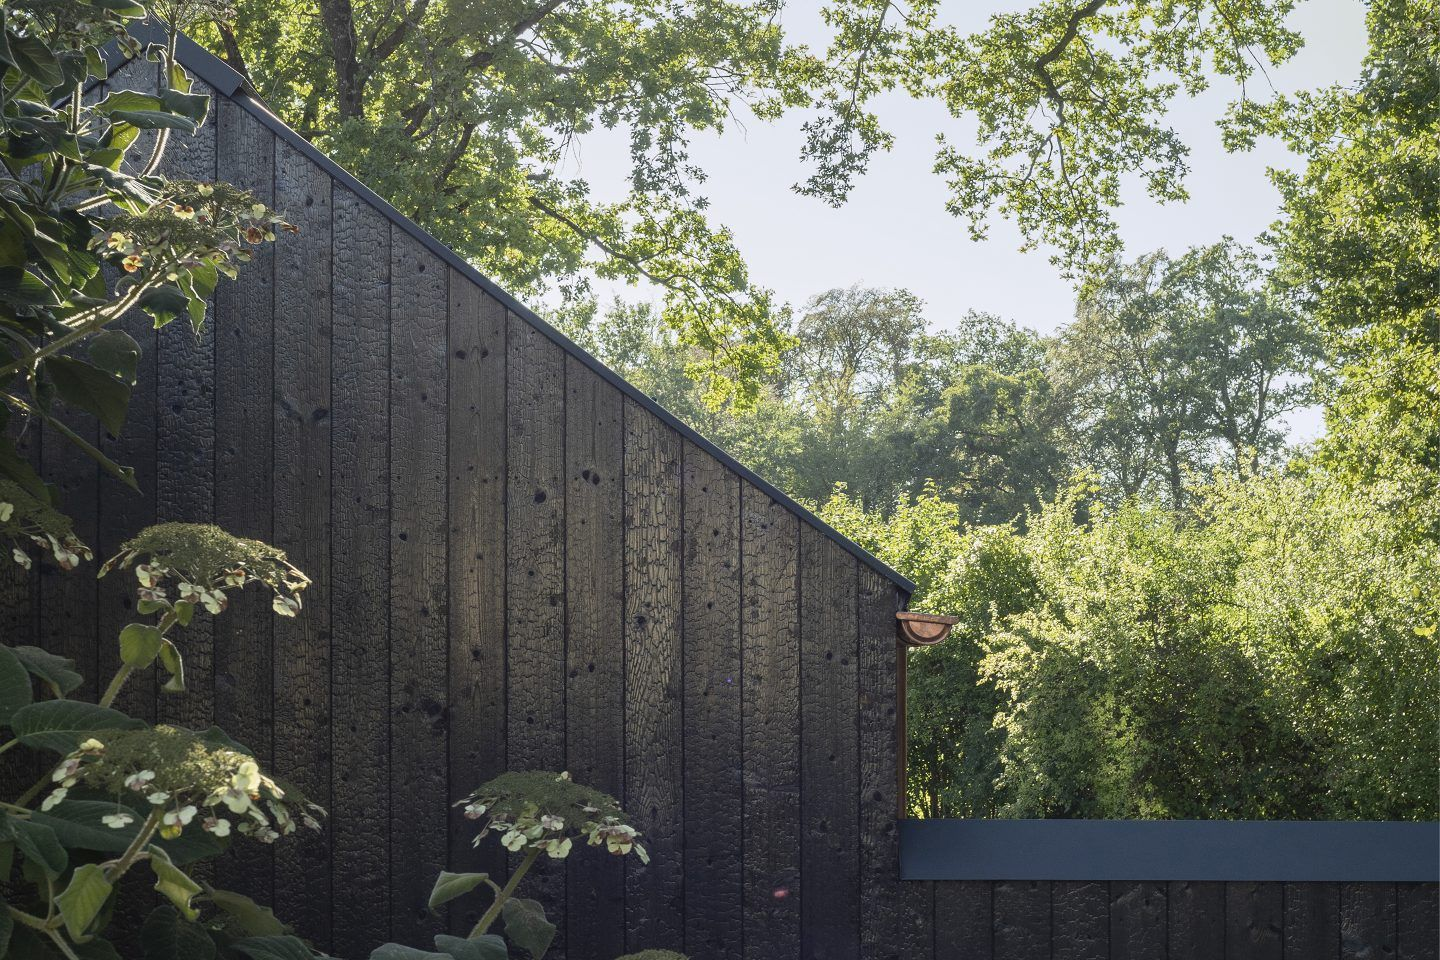 IGNANT-Architecture-Buero-Wagner-The-Black-House-011